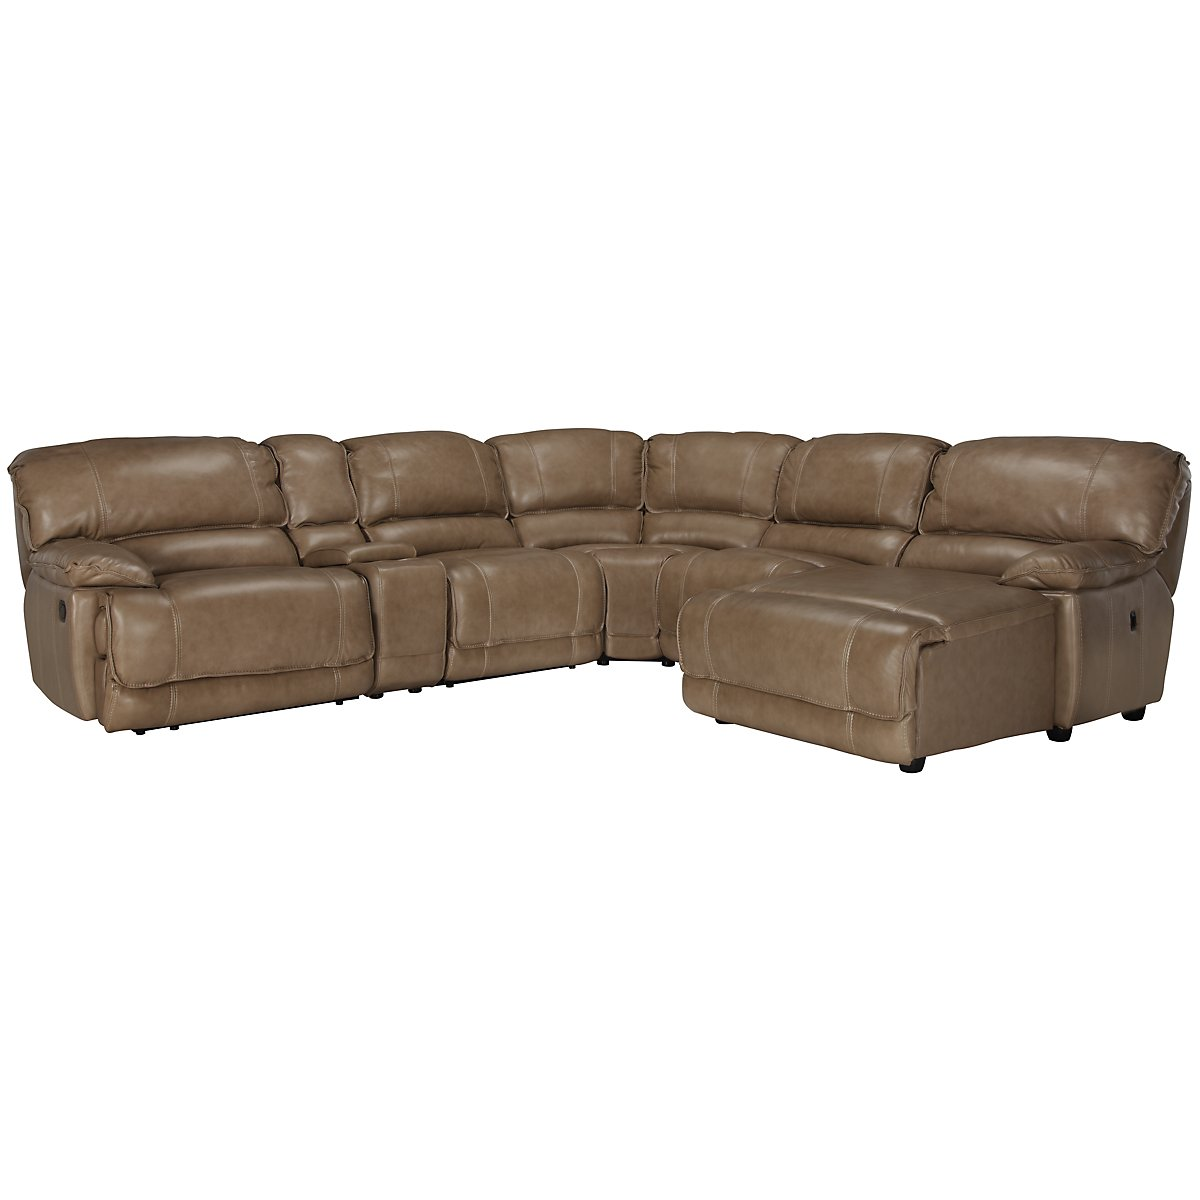 Benson Dark Taupe Leather & Vinyl Right Chaise Power Reclining Sectional